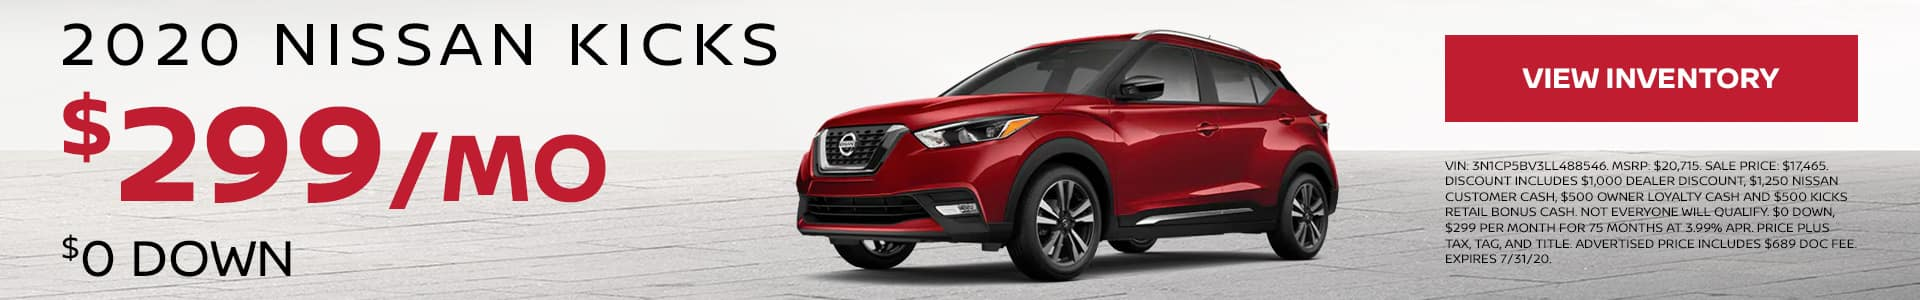 2020 Nissan Kicks $0 Down $299 per month